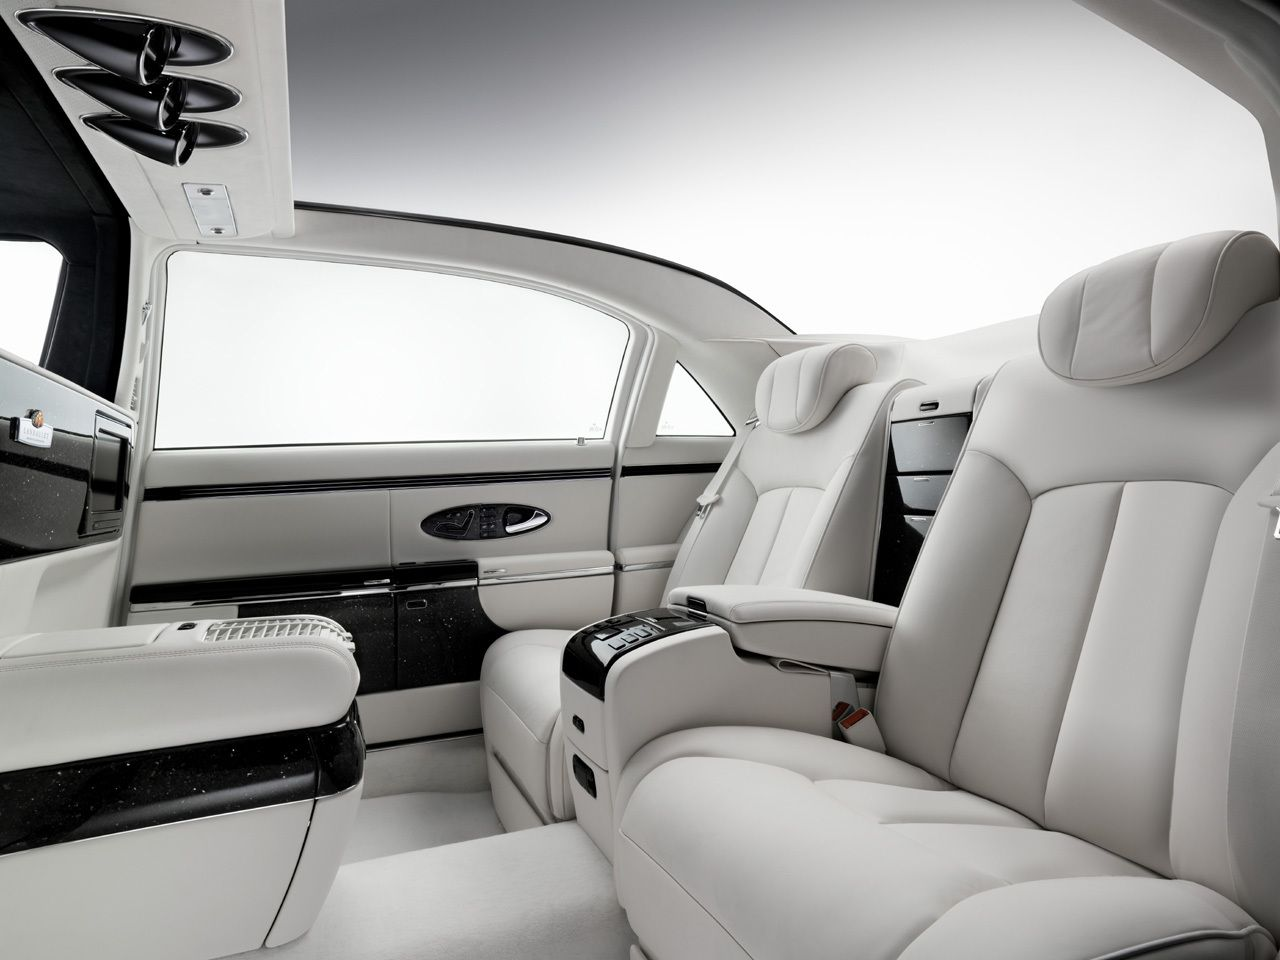 Maybach Luxury Car Interior Bing Images Best Car Interior Best Luxury Cars Maybach